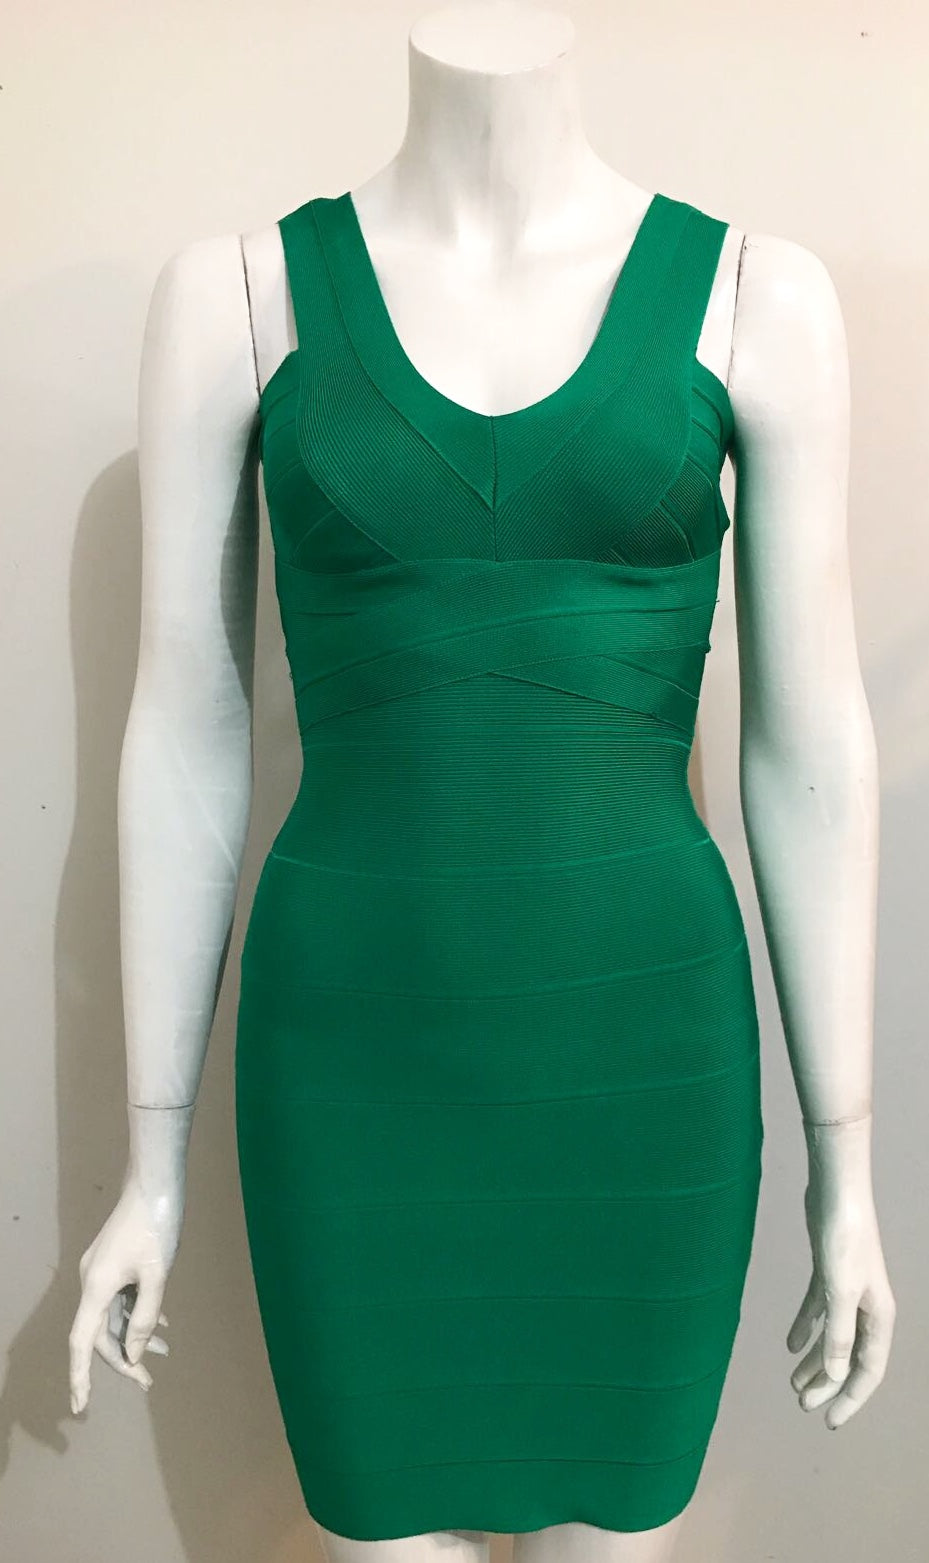 Bebe Green Bandage Dress Size XS